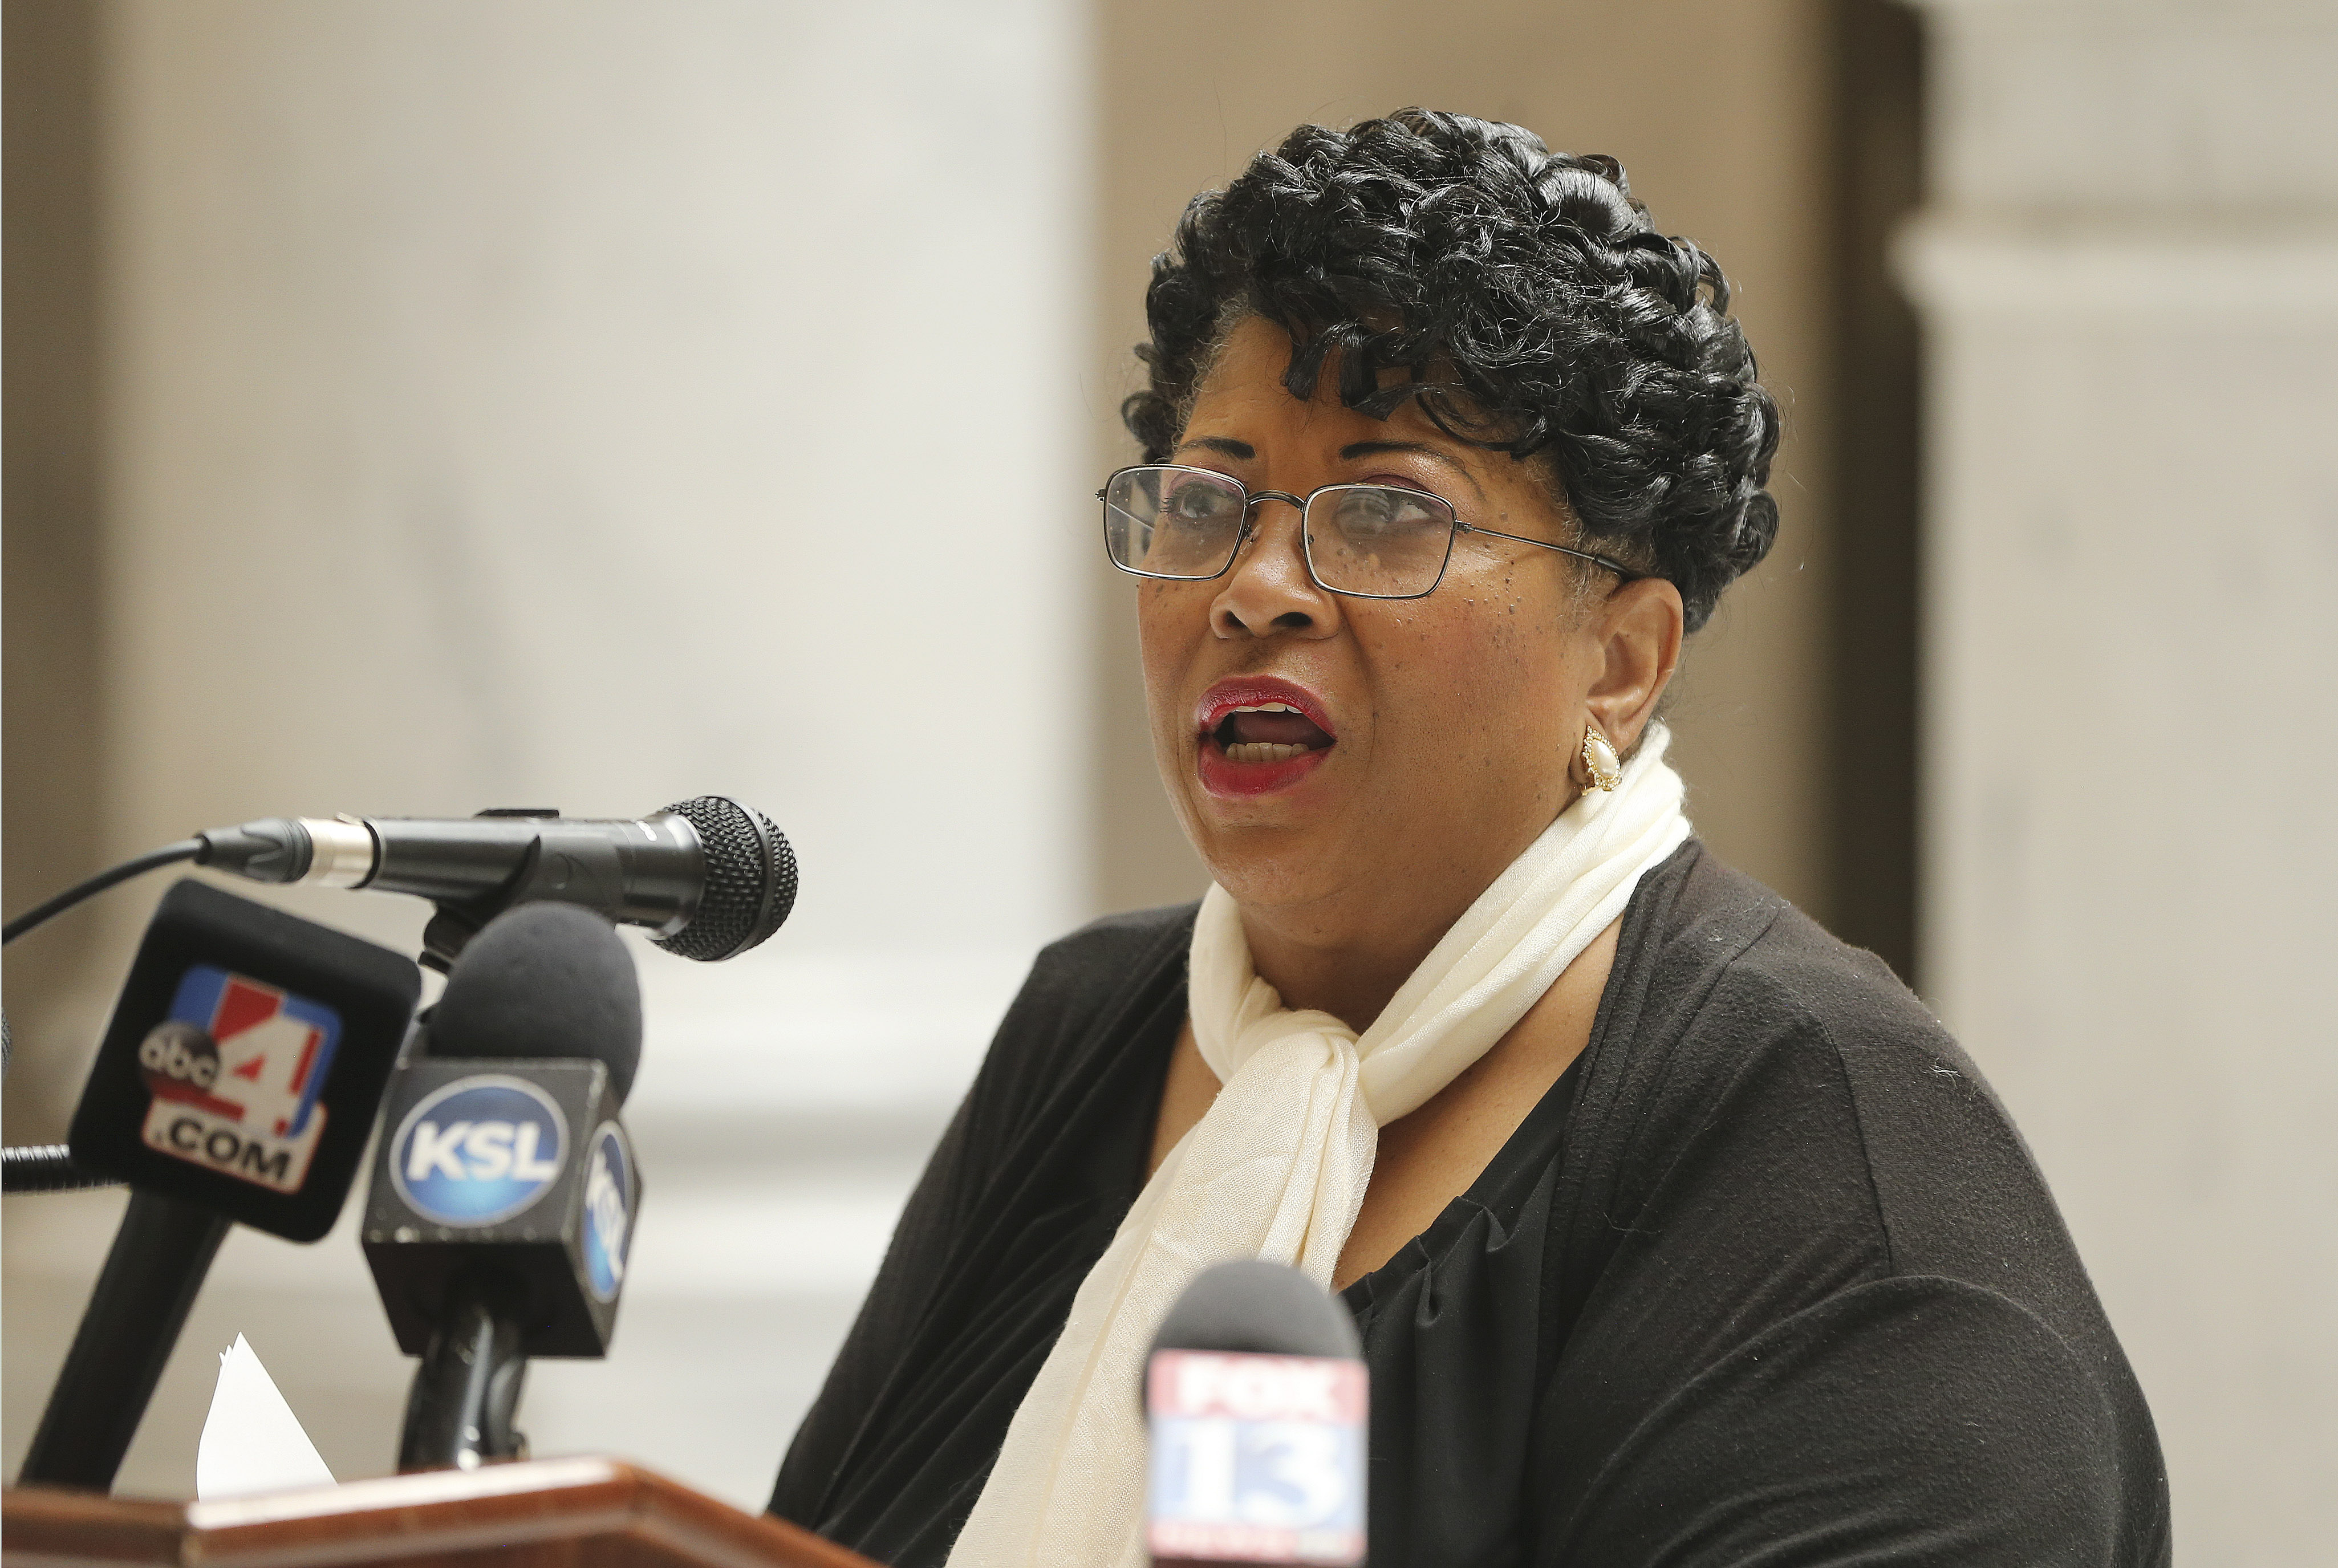 Jeanetta Williams, president of NAACP Salt Lake Branch and the NAACP Tri-State Conference of Idaho-Nevada-Utah, speaks during a press conference at the Capitol in Salt Lake City on Friday, June 5, 2020. Speakers proposed legislation on police relationships with community and broad goals for community discussion to address long-standing nationwide concerns.